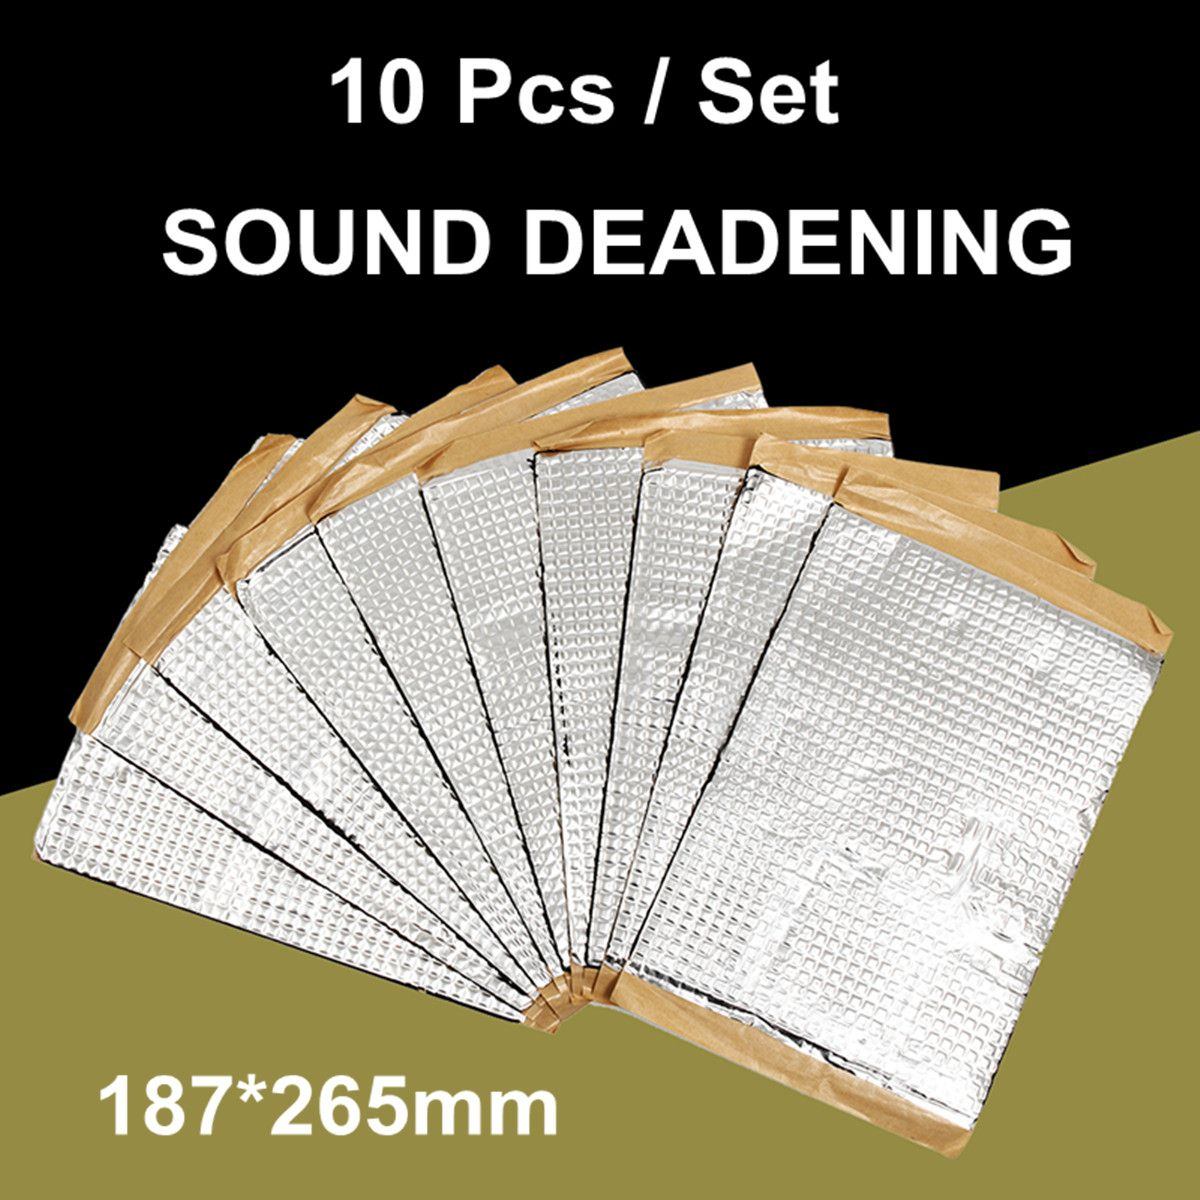 10 Pcs 2mm Automobiles Car Sound Deadener Deadening Vibration Sound Proofing Damping Mat Heat Noise Shield Insulation 187x265mm(China)